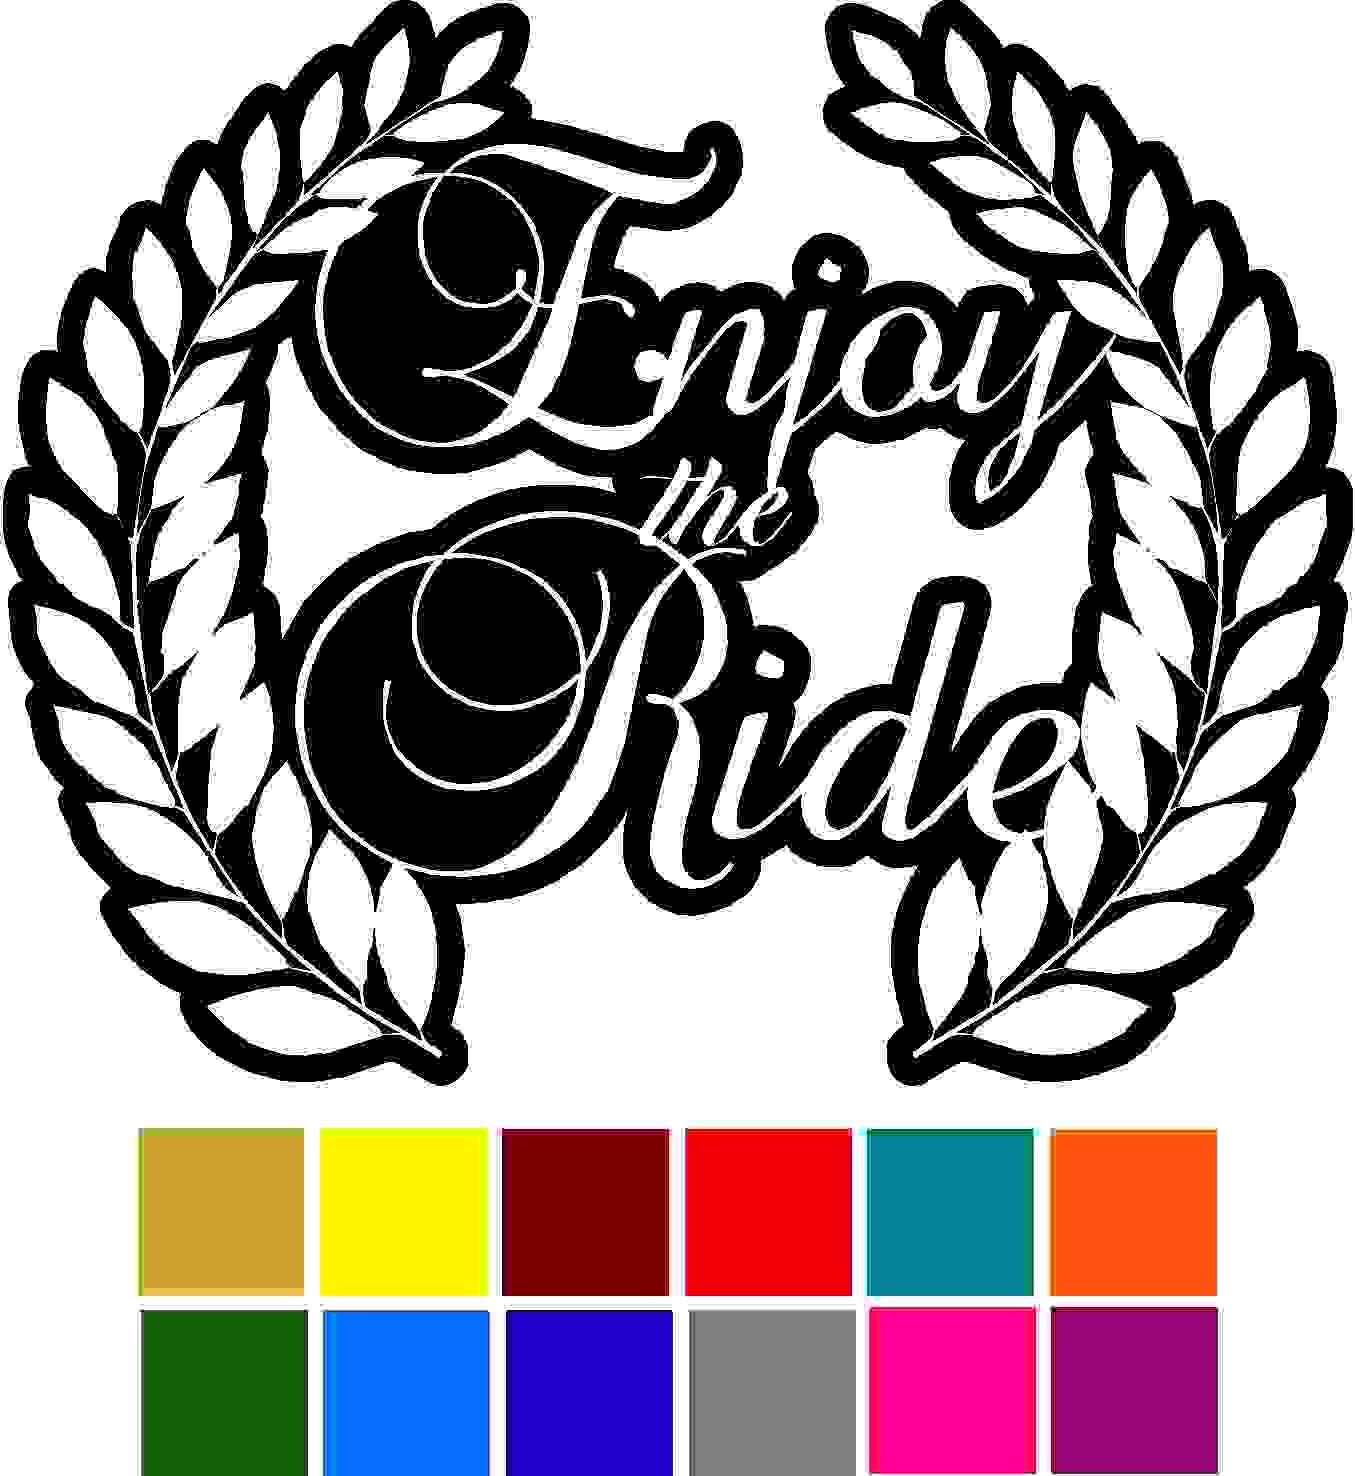 Enjoy the Ride Quote Car Window Tumblers Wall Decal Sticker Vinyl Laptops Cellphones Phones Tablets Ipads Helmets Motorcycles Computer Towers V and T Gifts